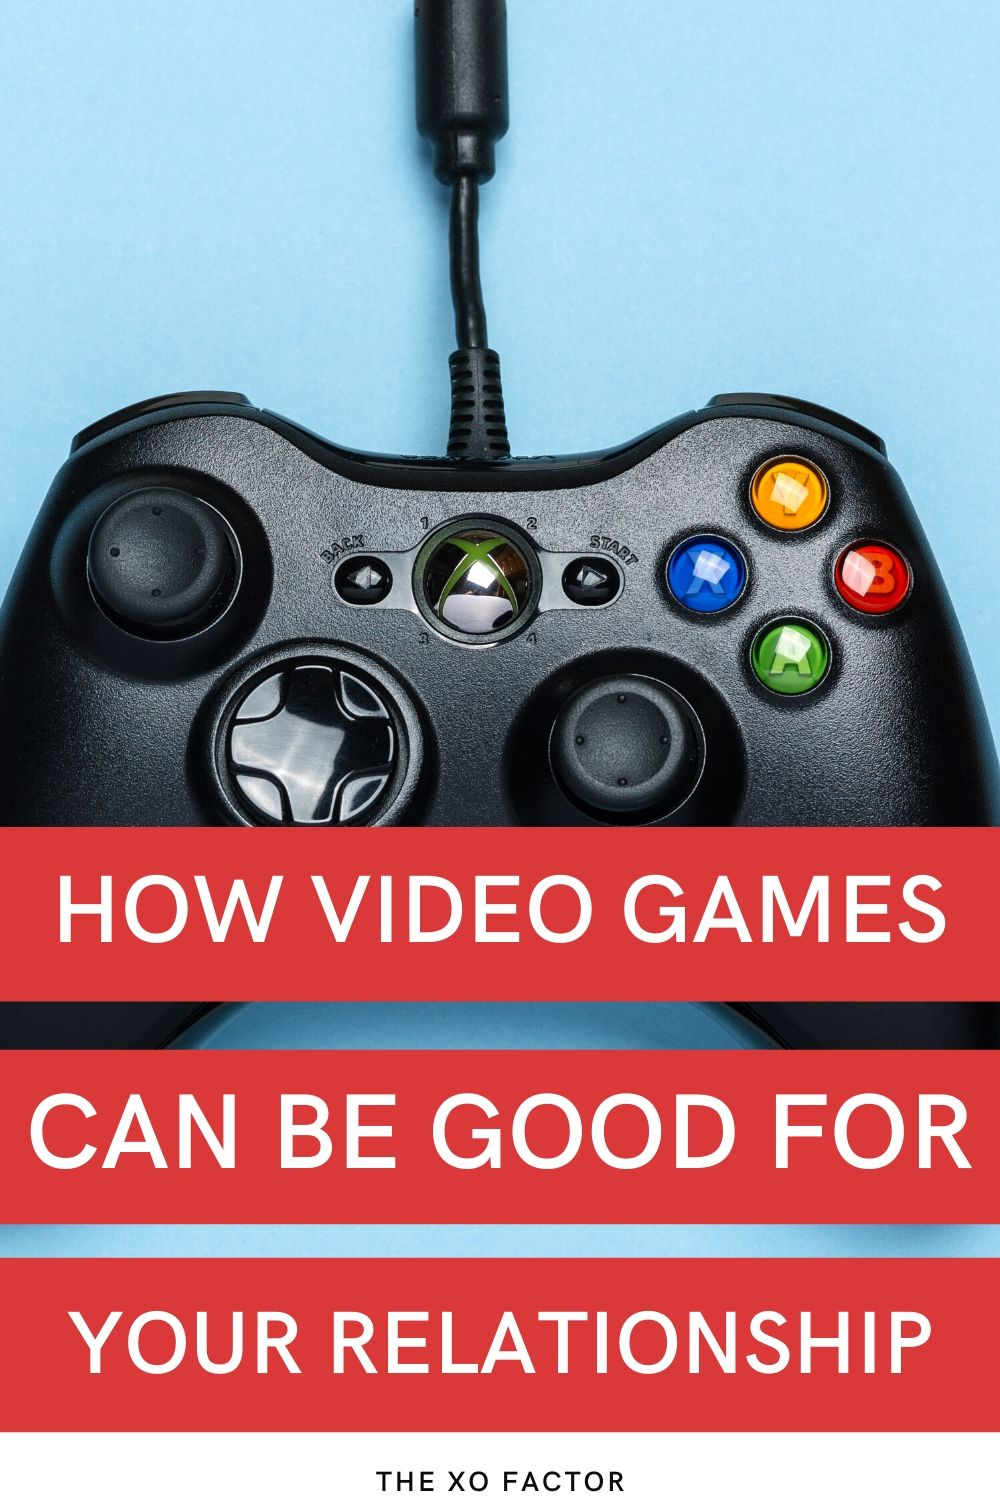 how video games can be good for your relationship